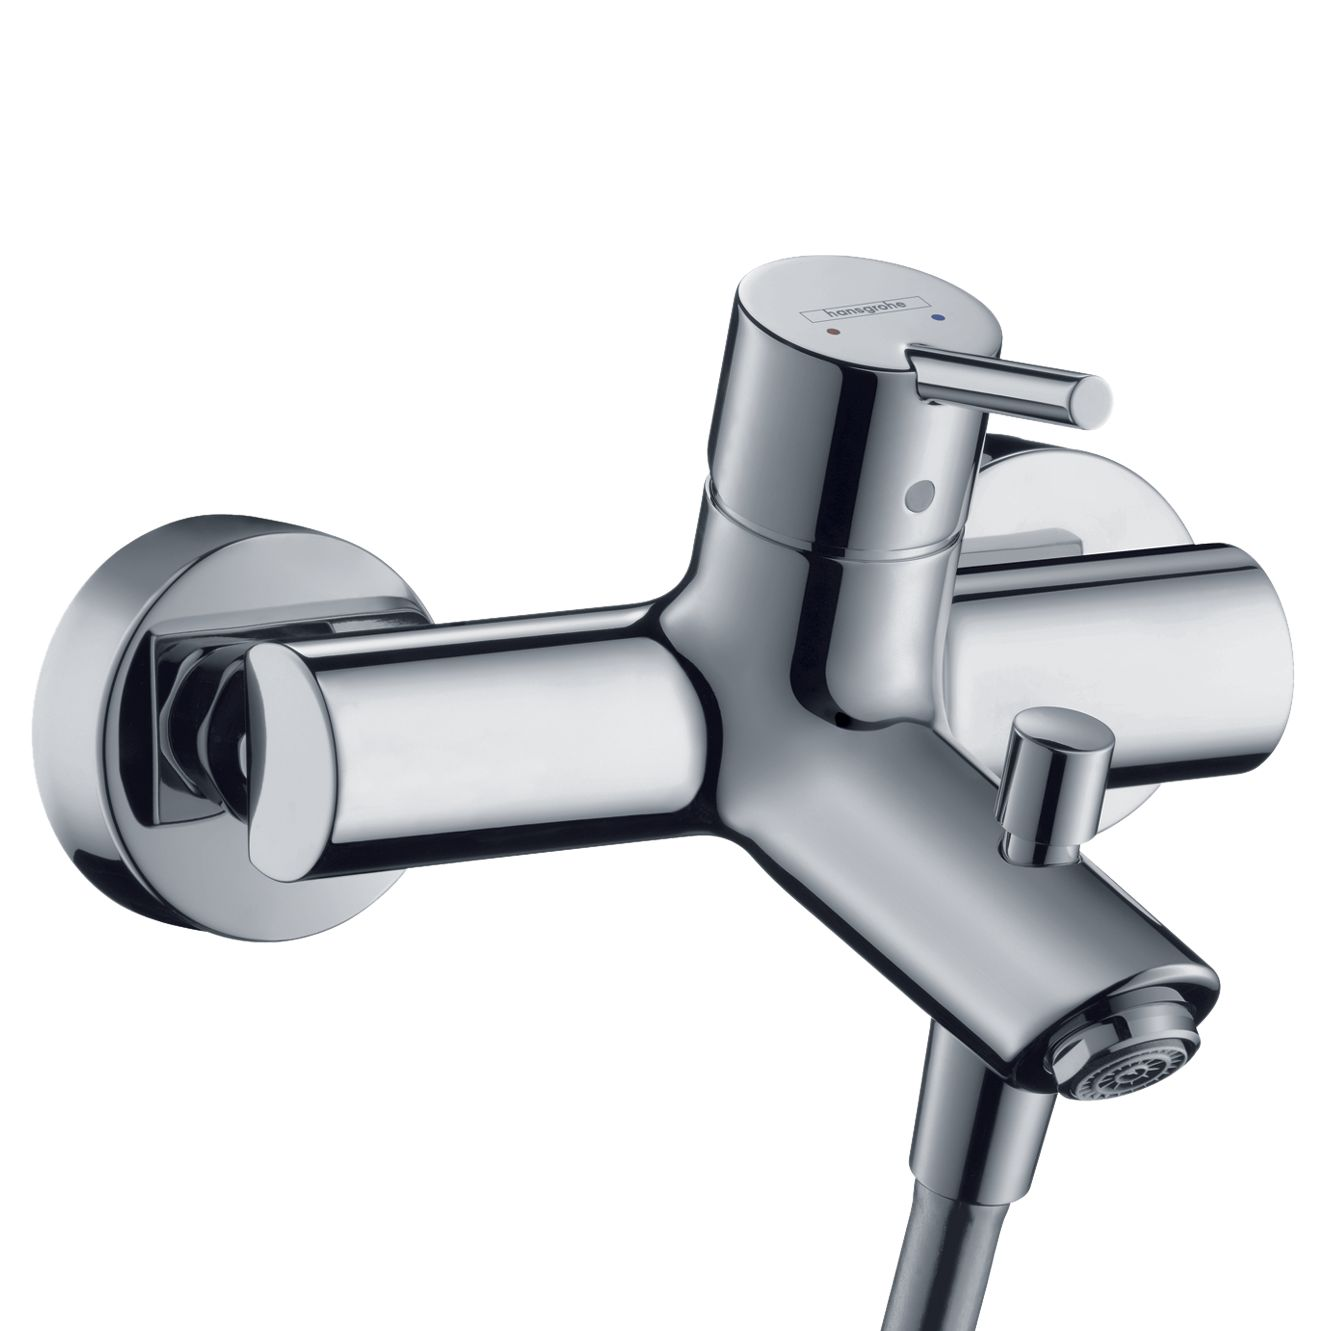 Hansgrohe Tails S2 Chrome Single Lever Bath / Shower Mixer Tap at John Lewis